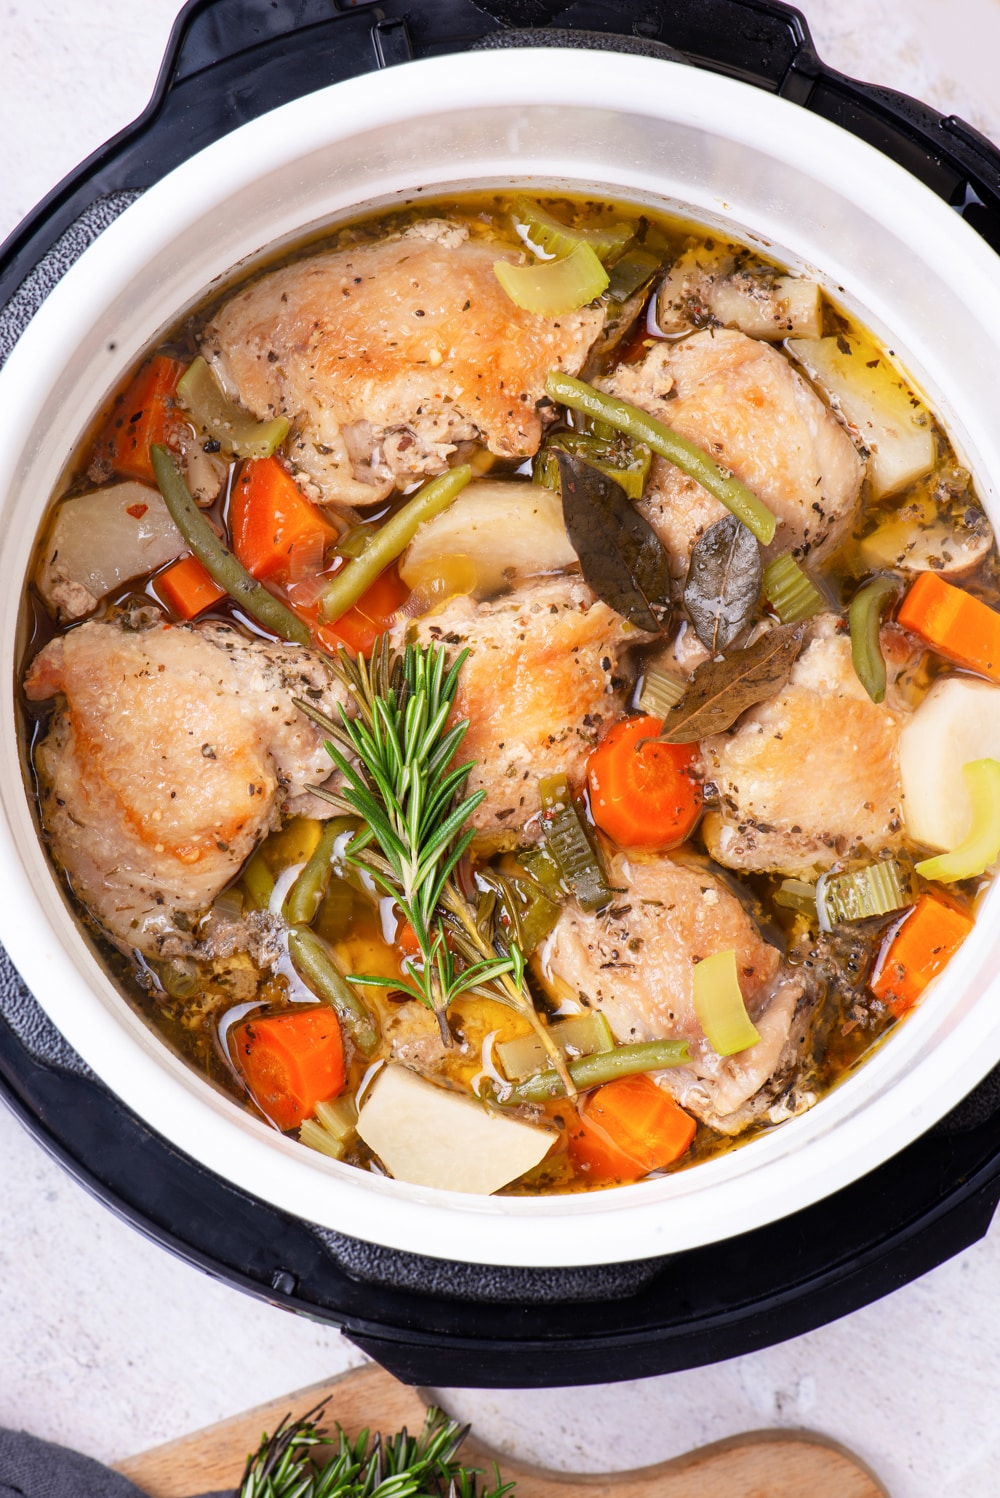 Chicken stew that has been cooked in an Instant Pot.